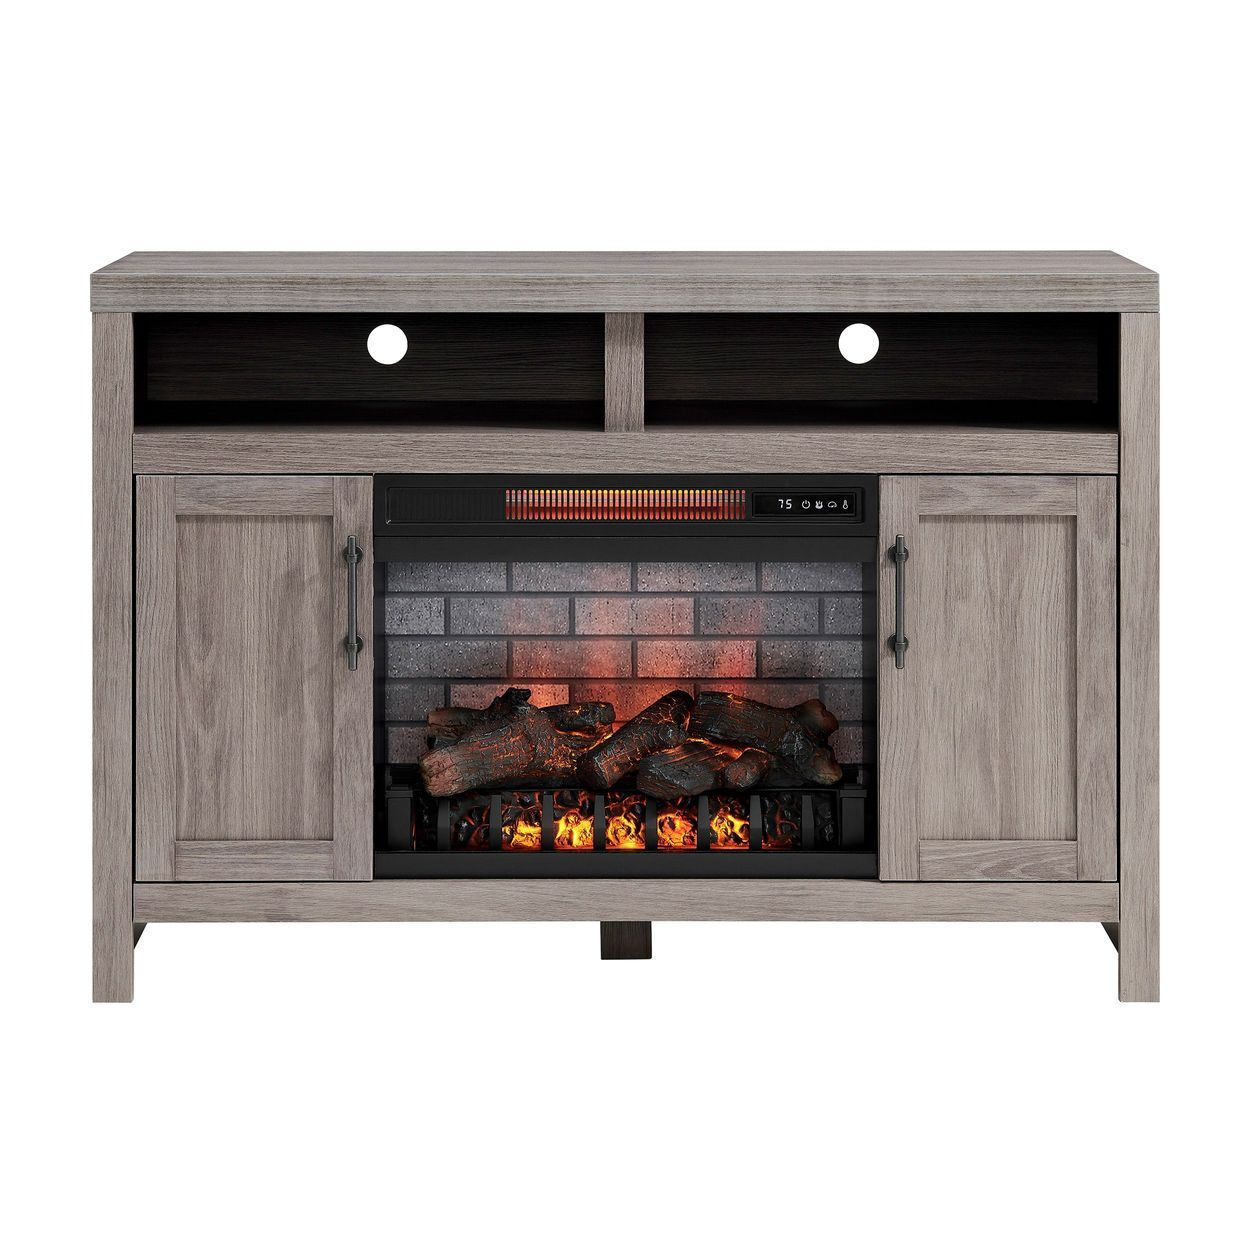 Greentouch 48 In W Weathered Gray Infrared Quartz Electric Fireplace Lowes Com In 2020 Electric Fireplace Fireplace Grey Wash